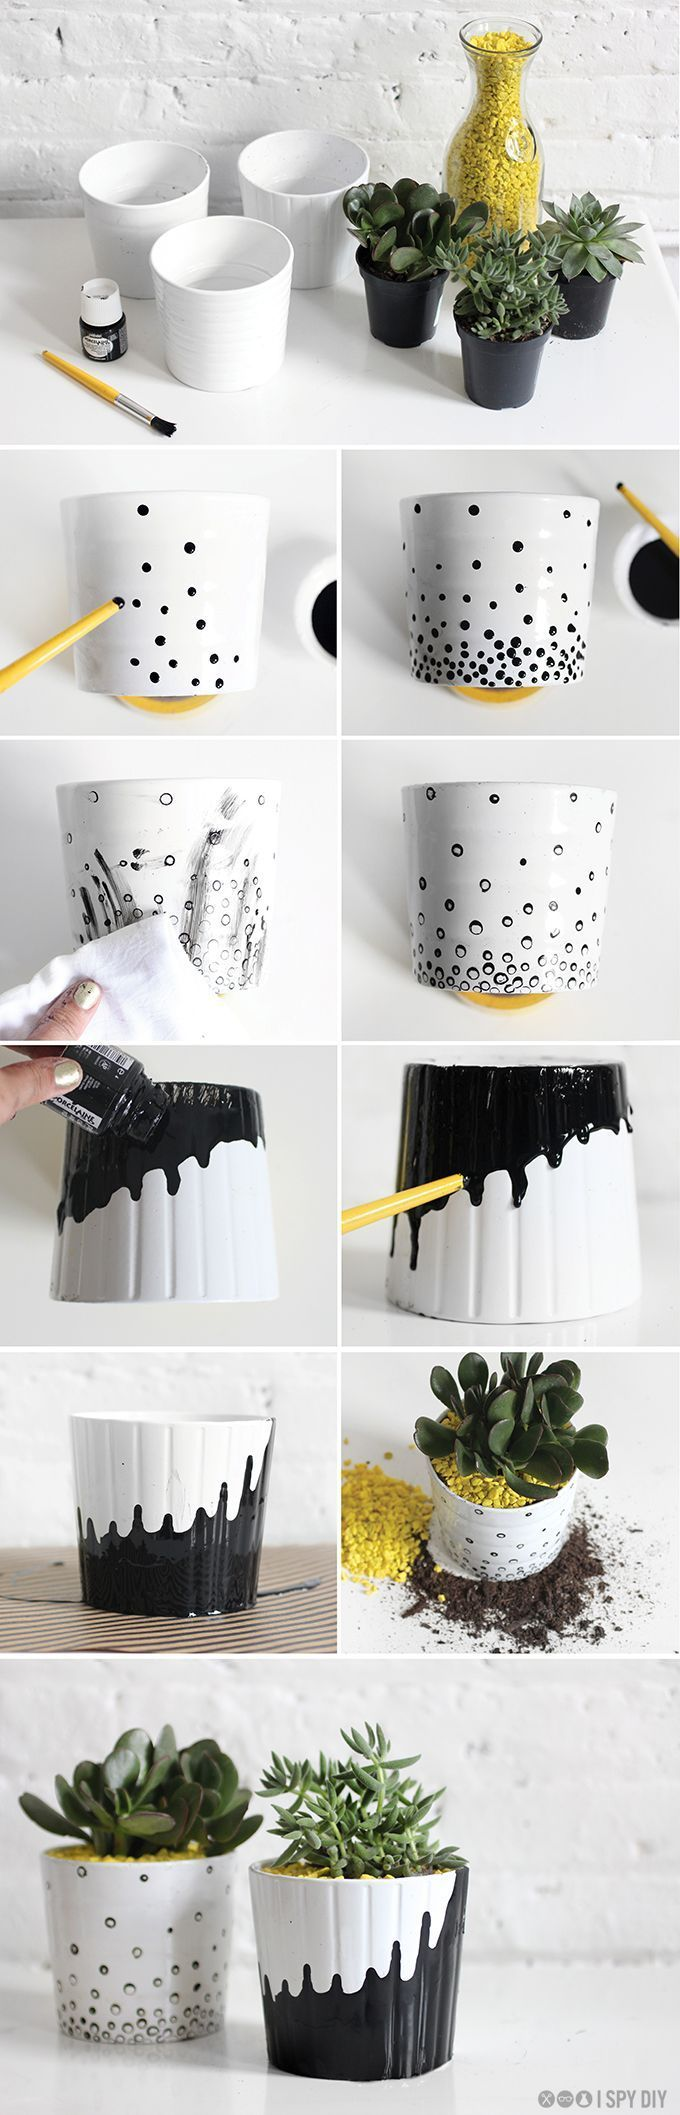 DIY succulent planters modern black and white with gold accents